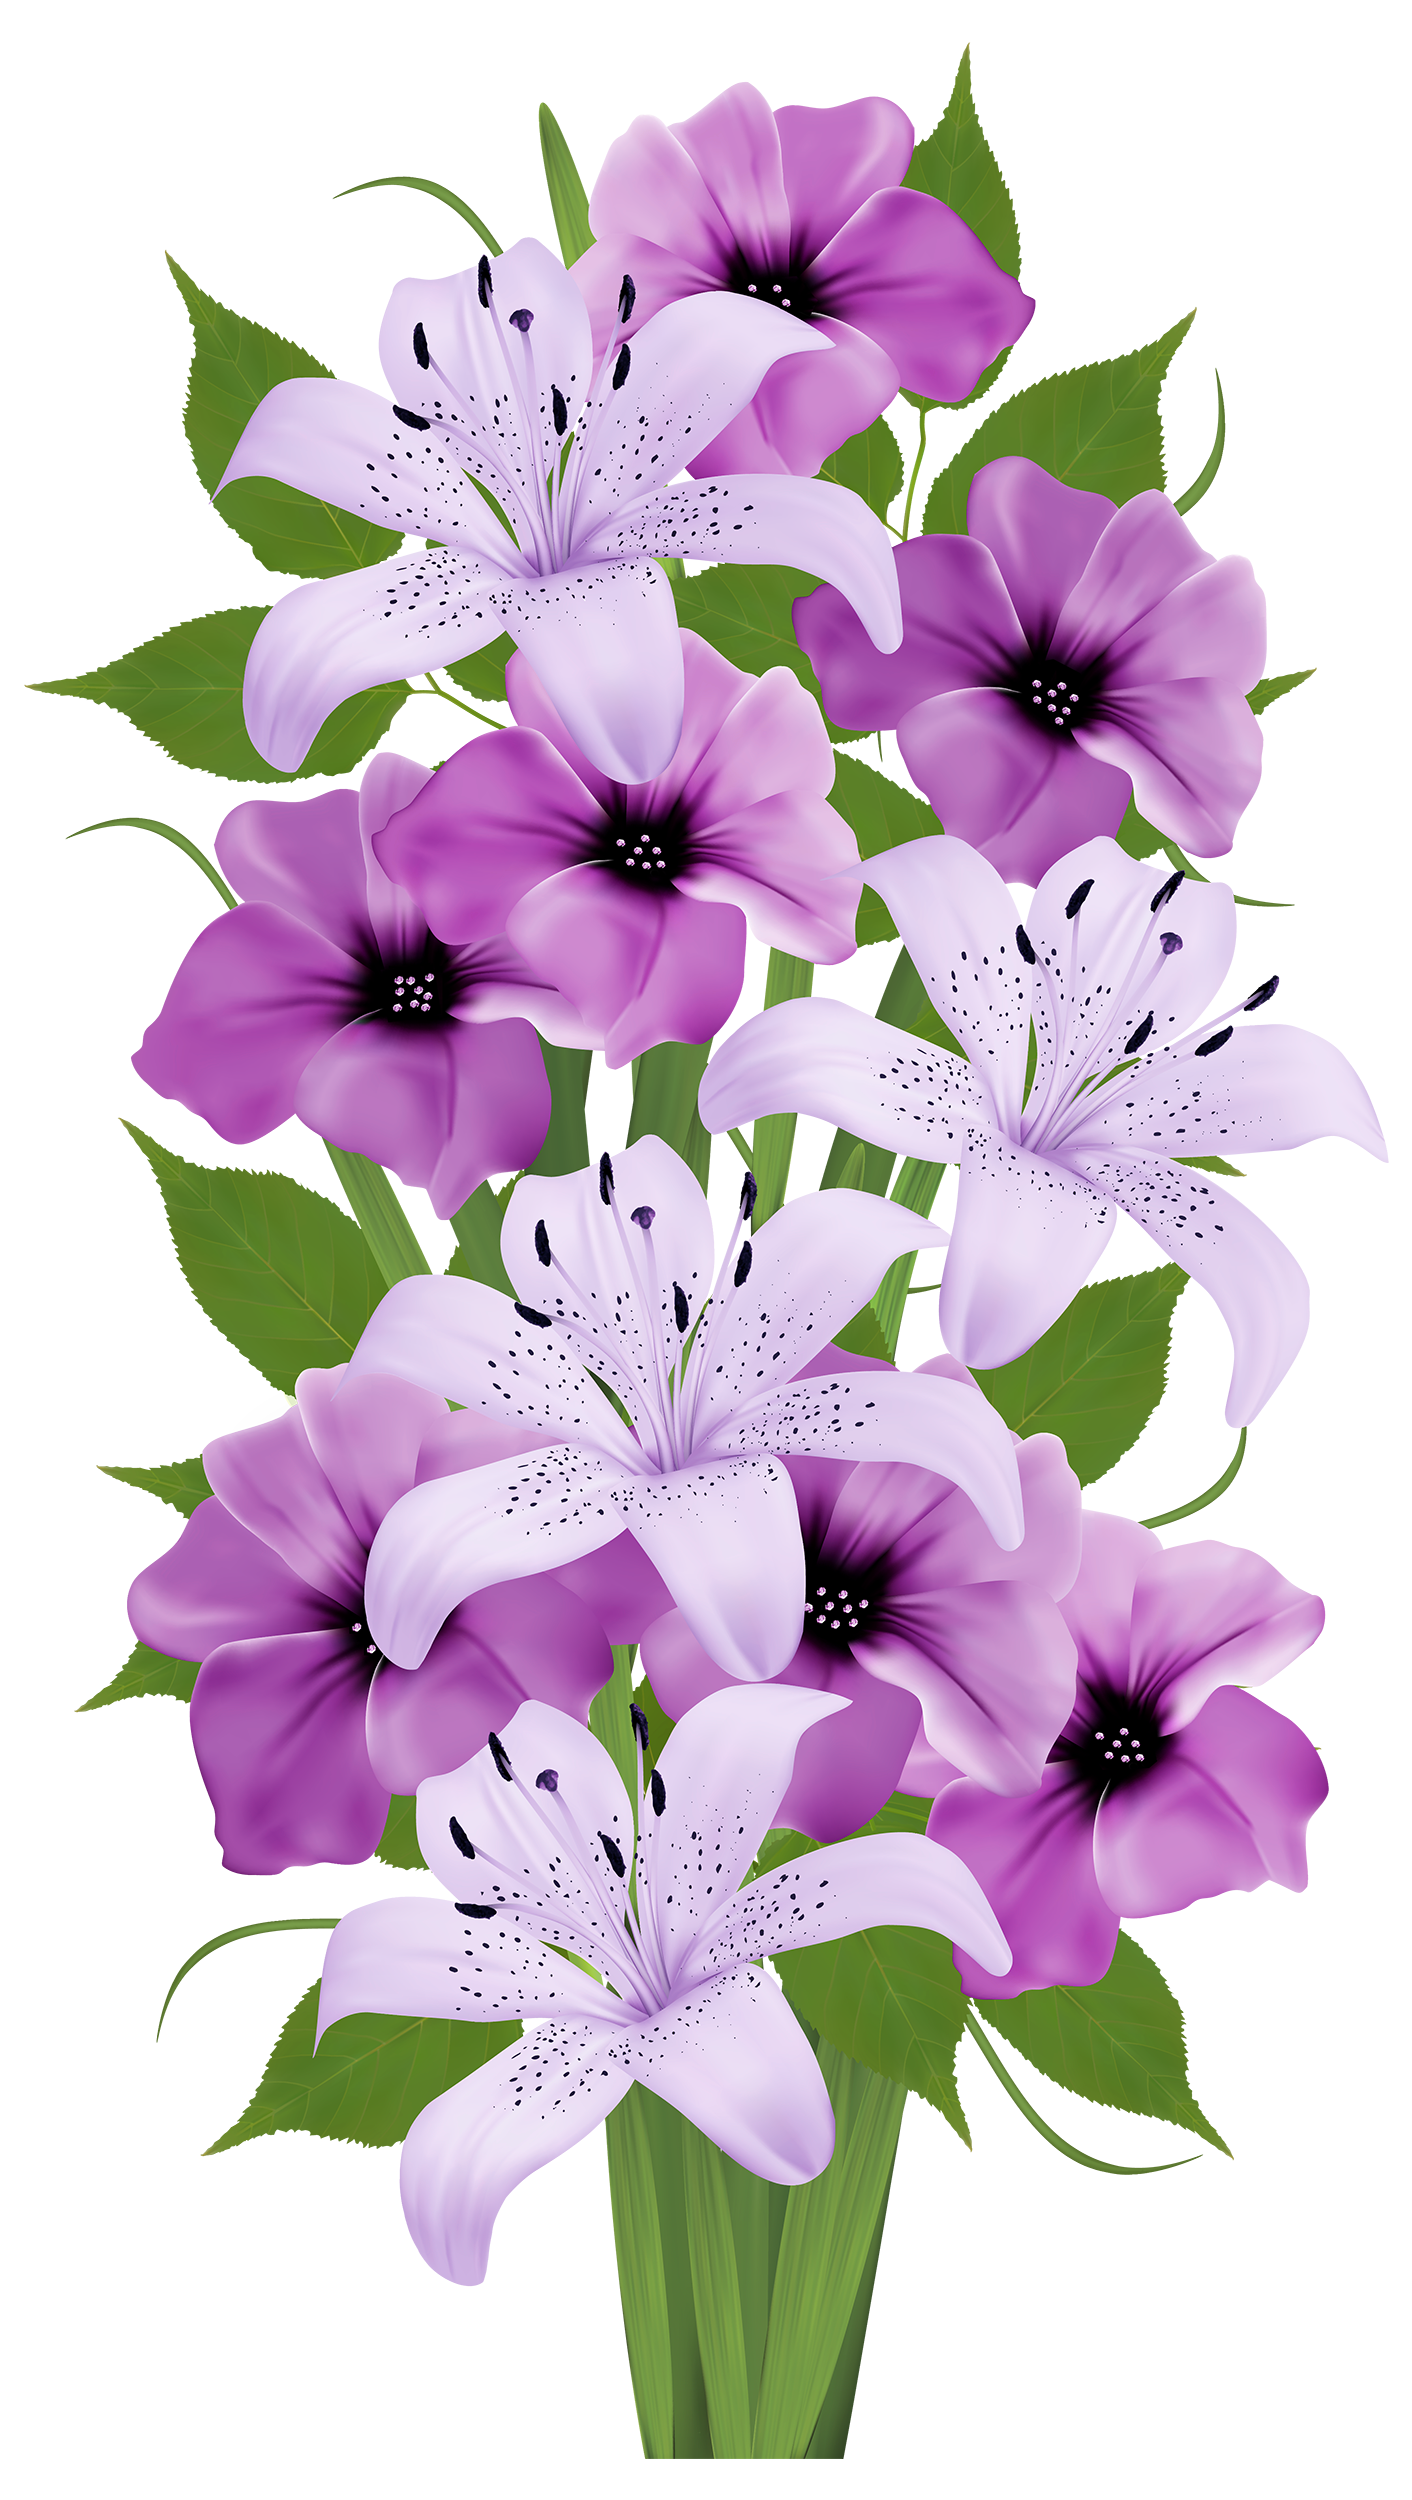 Purple lilies bouquet clip art everyday for cards scrapbooking purple lilies bouquet exotic flowers colorful flowers tulips flowers beautiful flowers flower izmirmasajfo